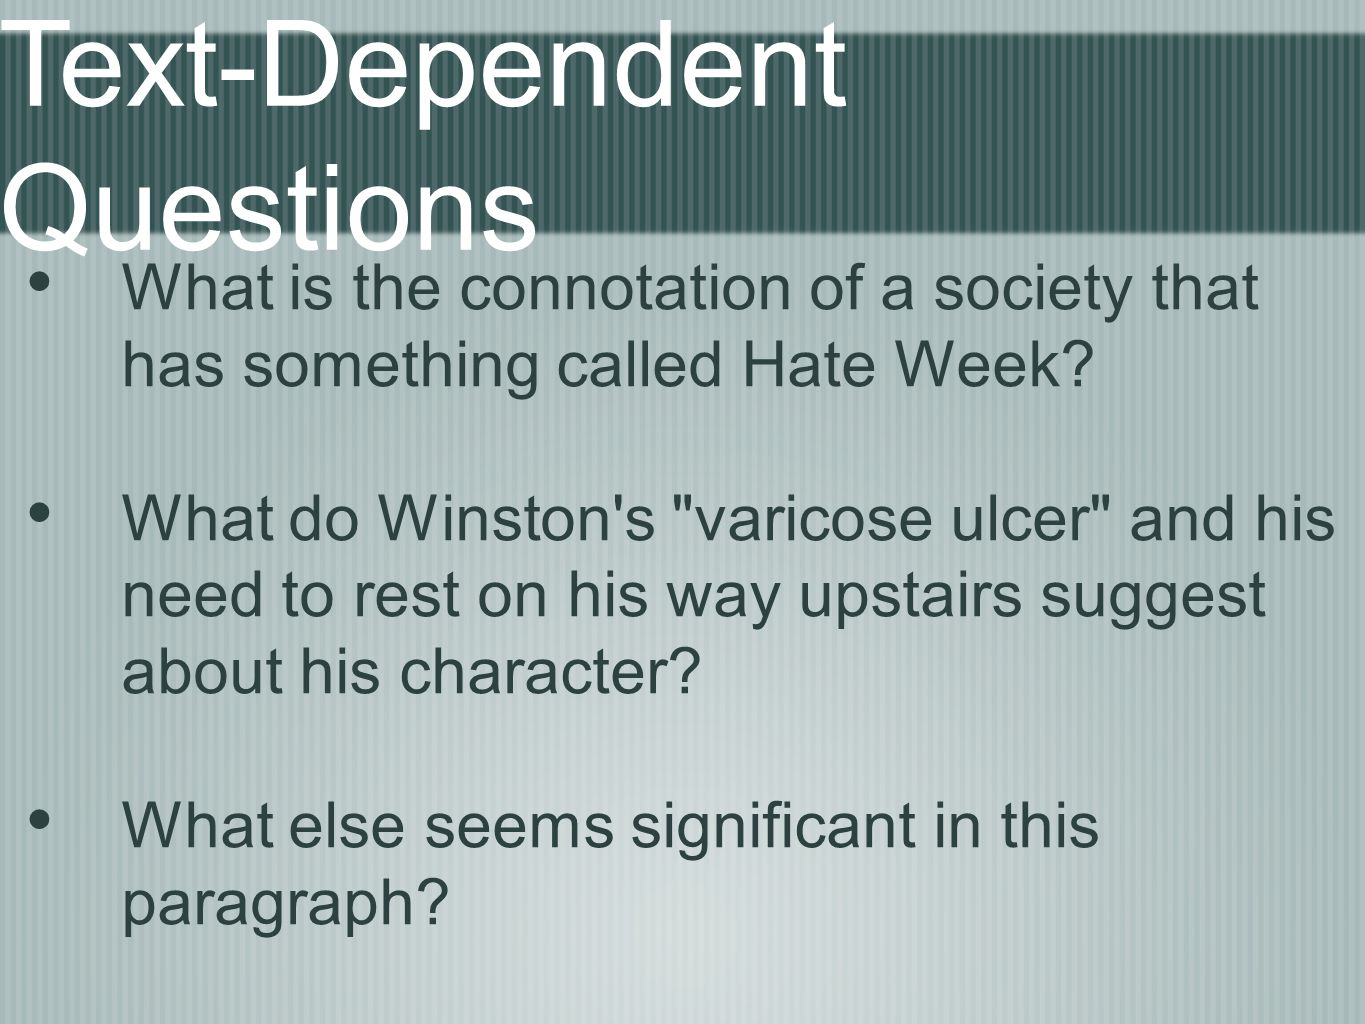 What is the connotation of a society that has something called Hate Week? What do Winston's